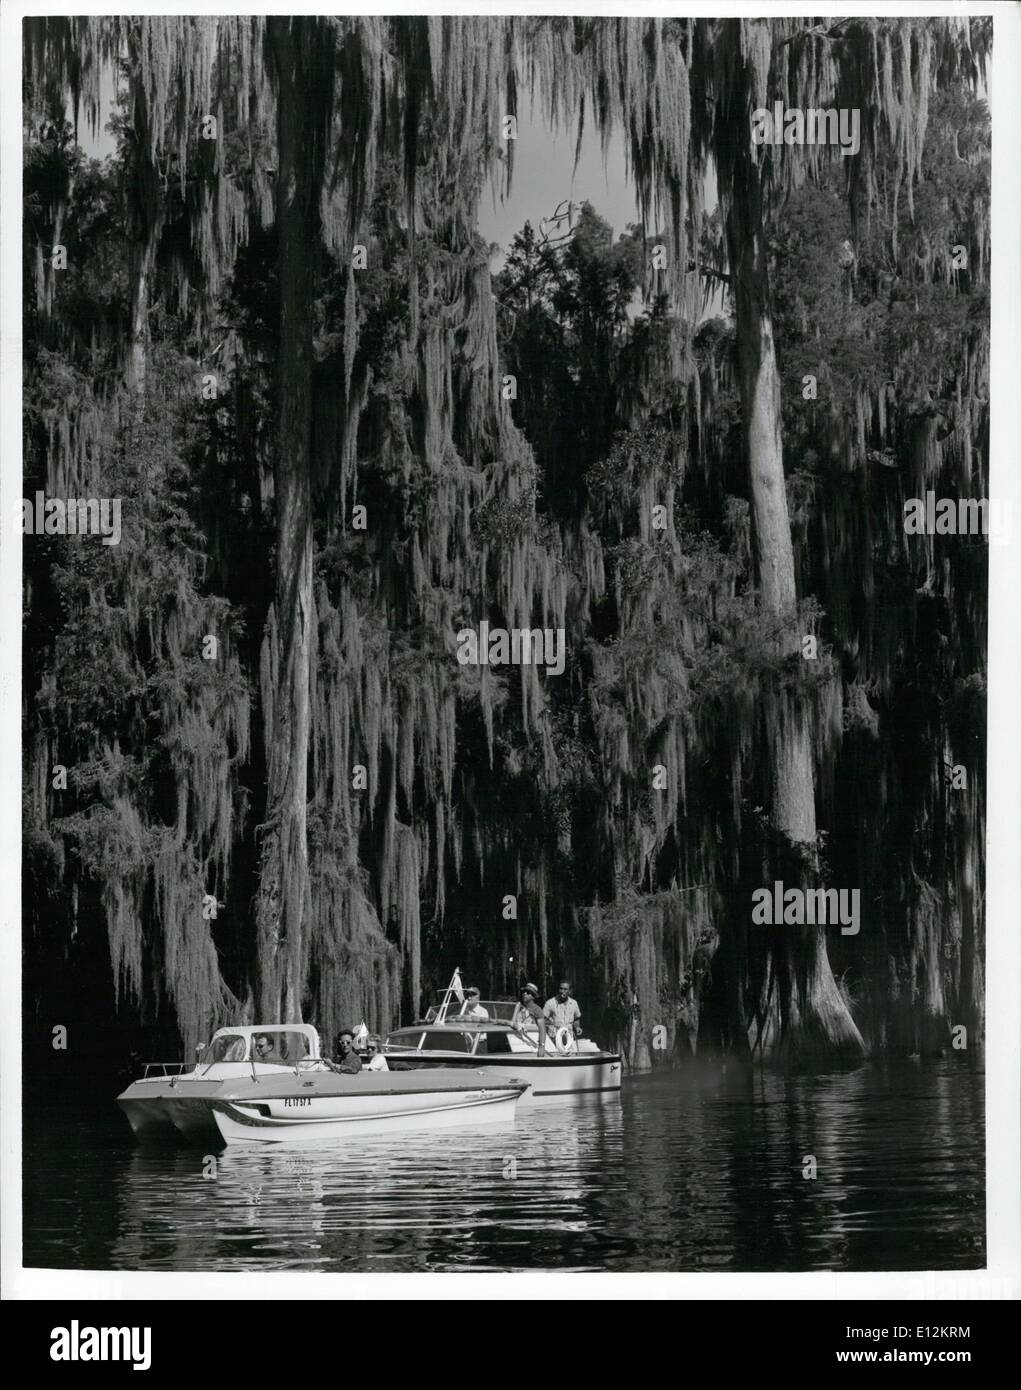 Feb. 24, 2012 - The lush beauty of moss-draped trees adds to the pleasure of boating on Florida waterways. - Stock Image